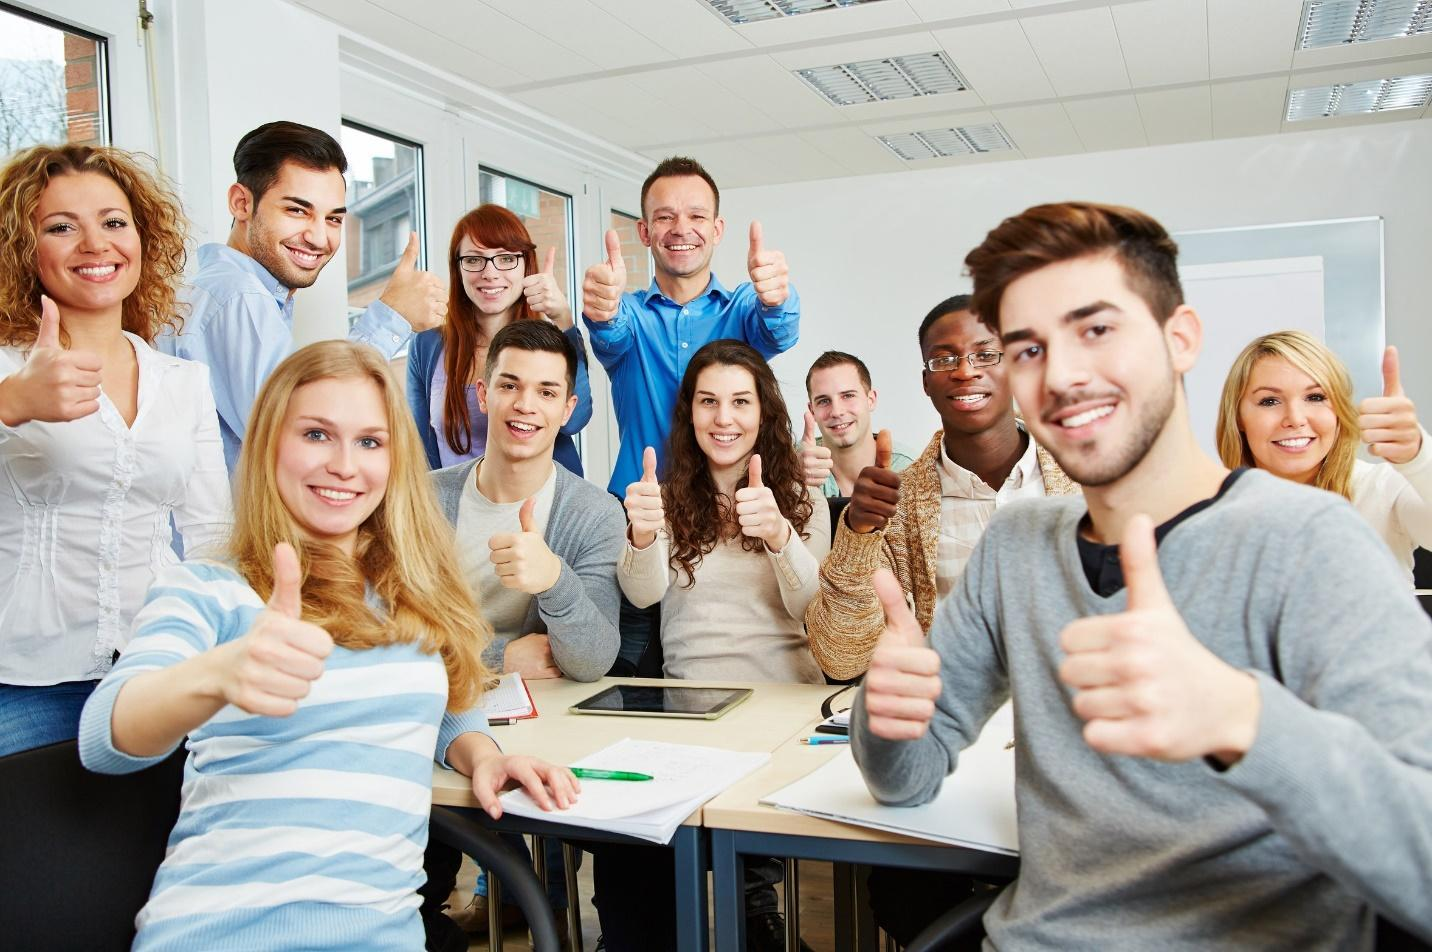 Students and teachers: Thumbs up